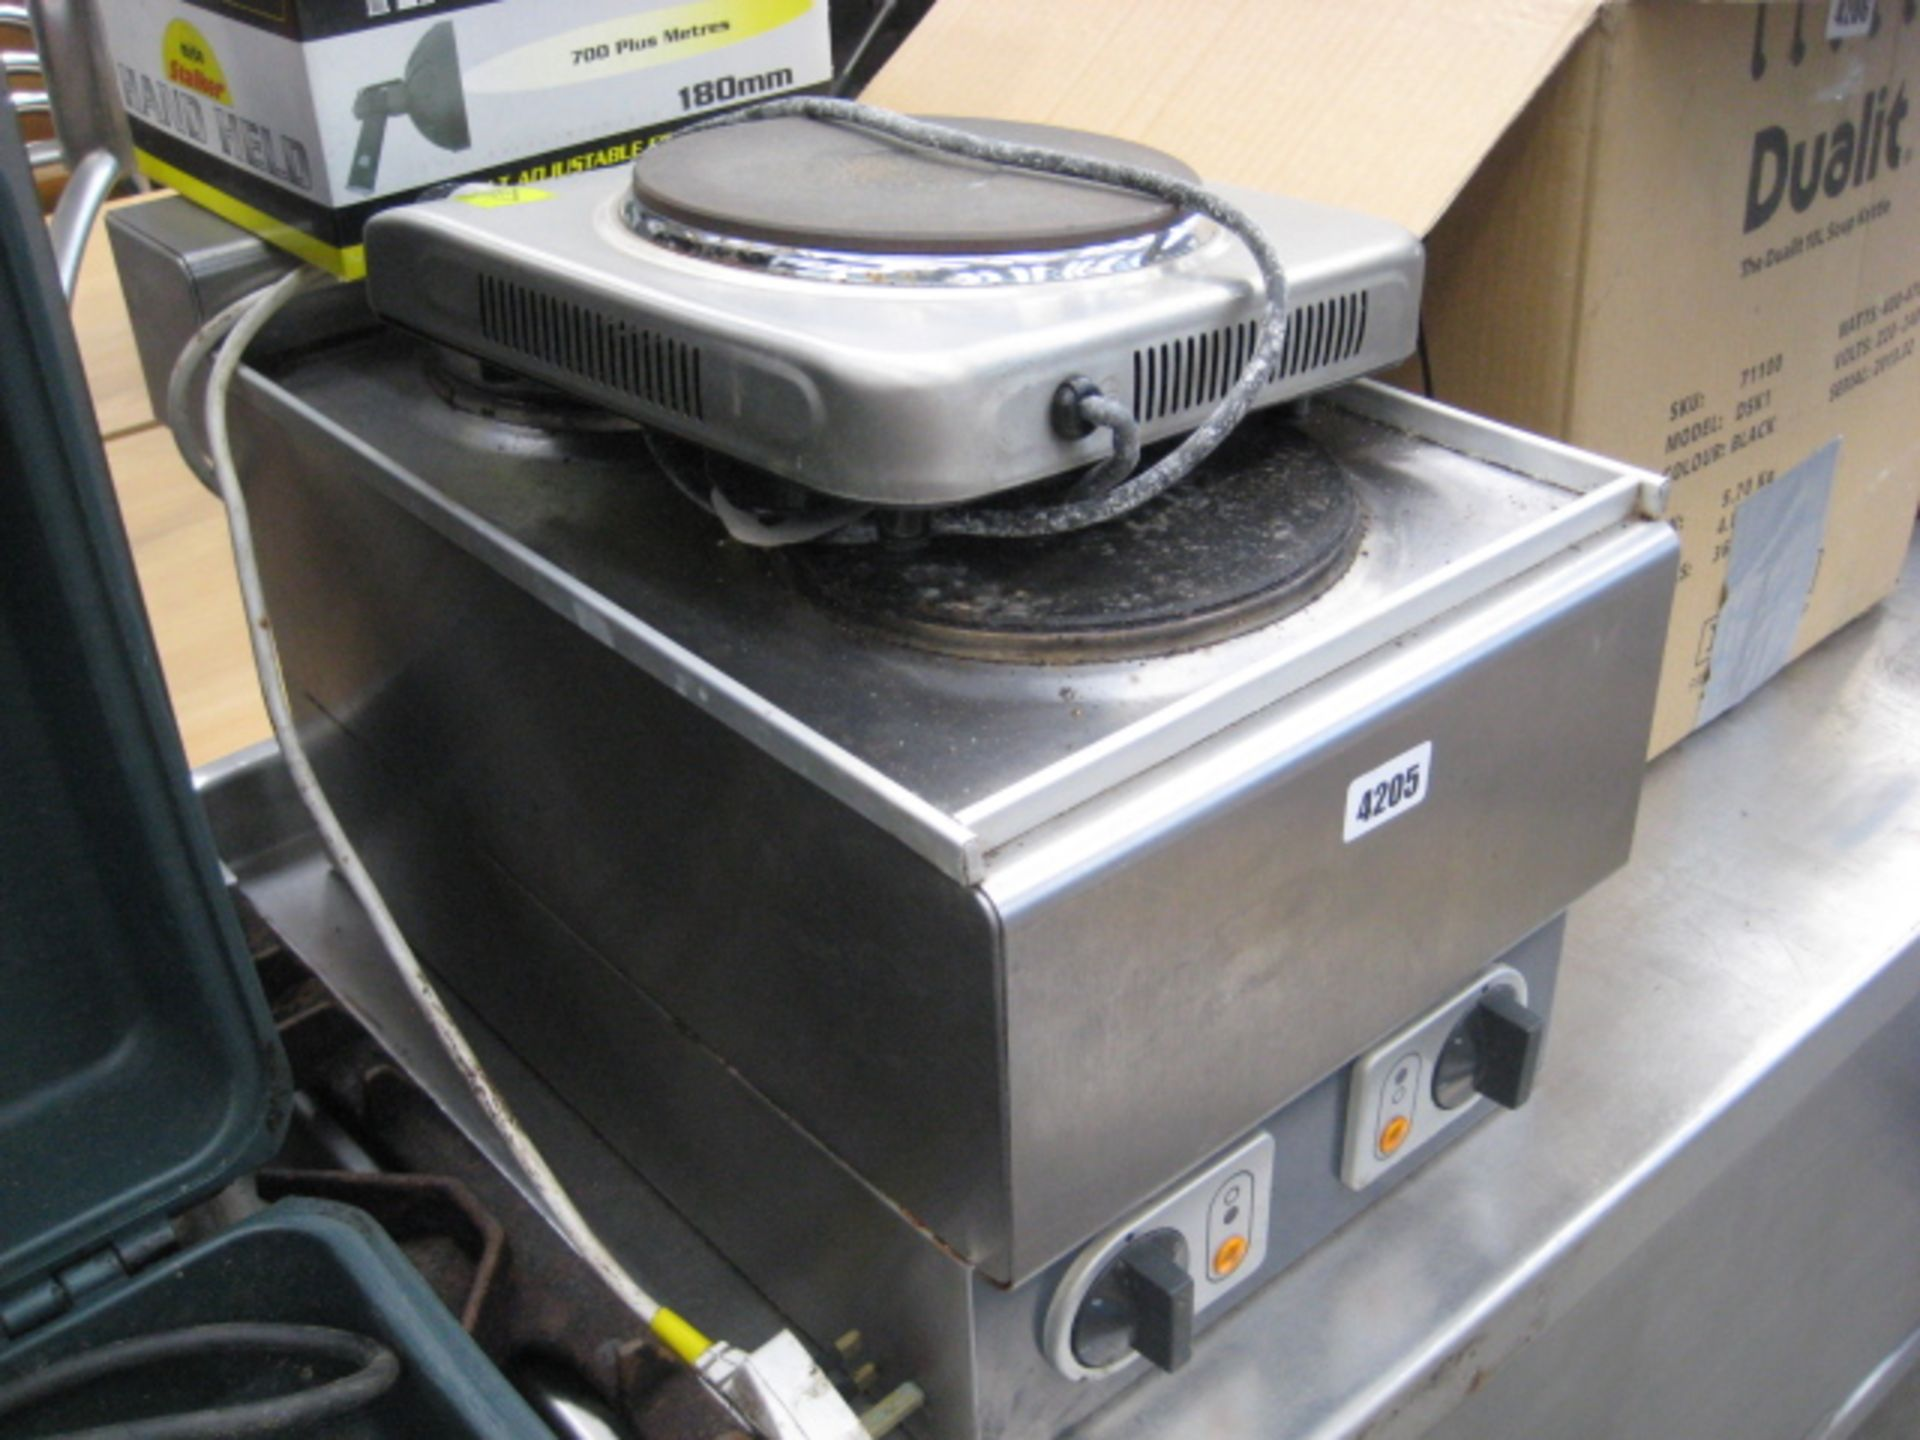 Lot 4205 - 240 volt 2 ring hot plate plus another single ring hot plate